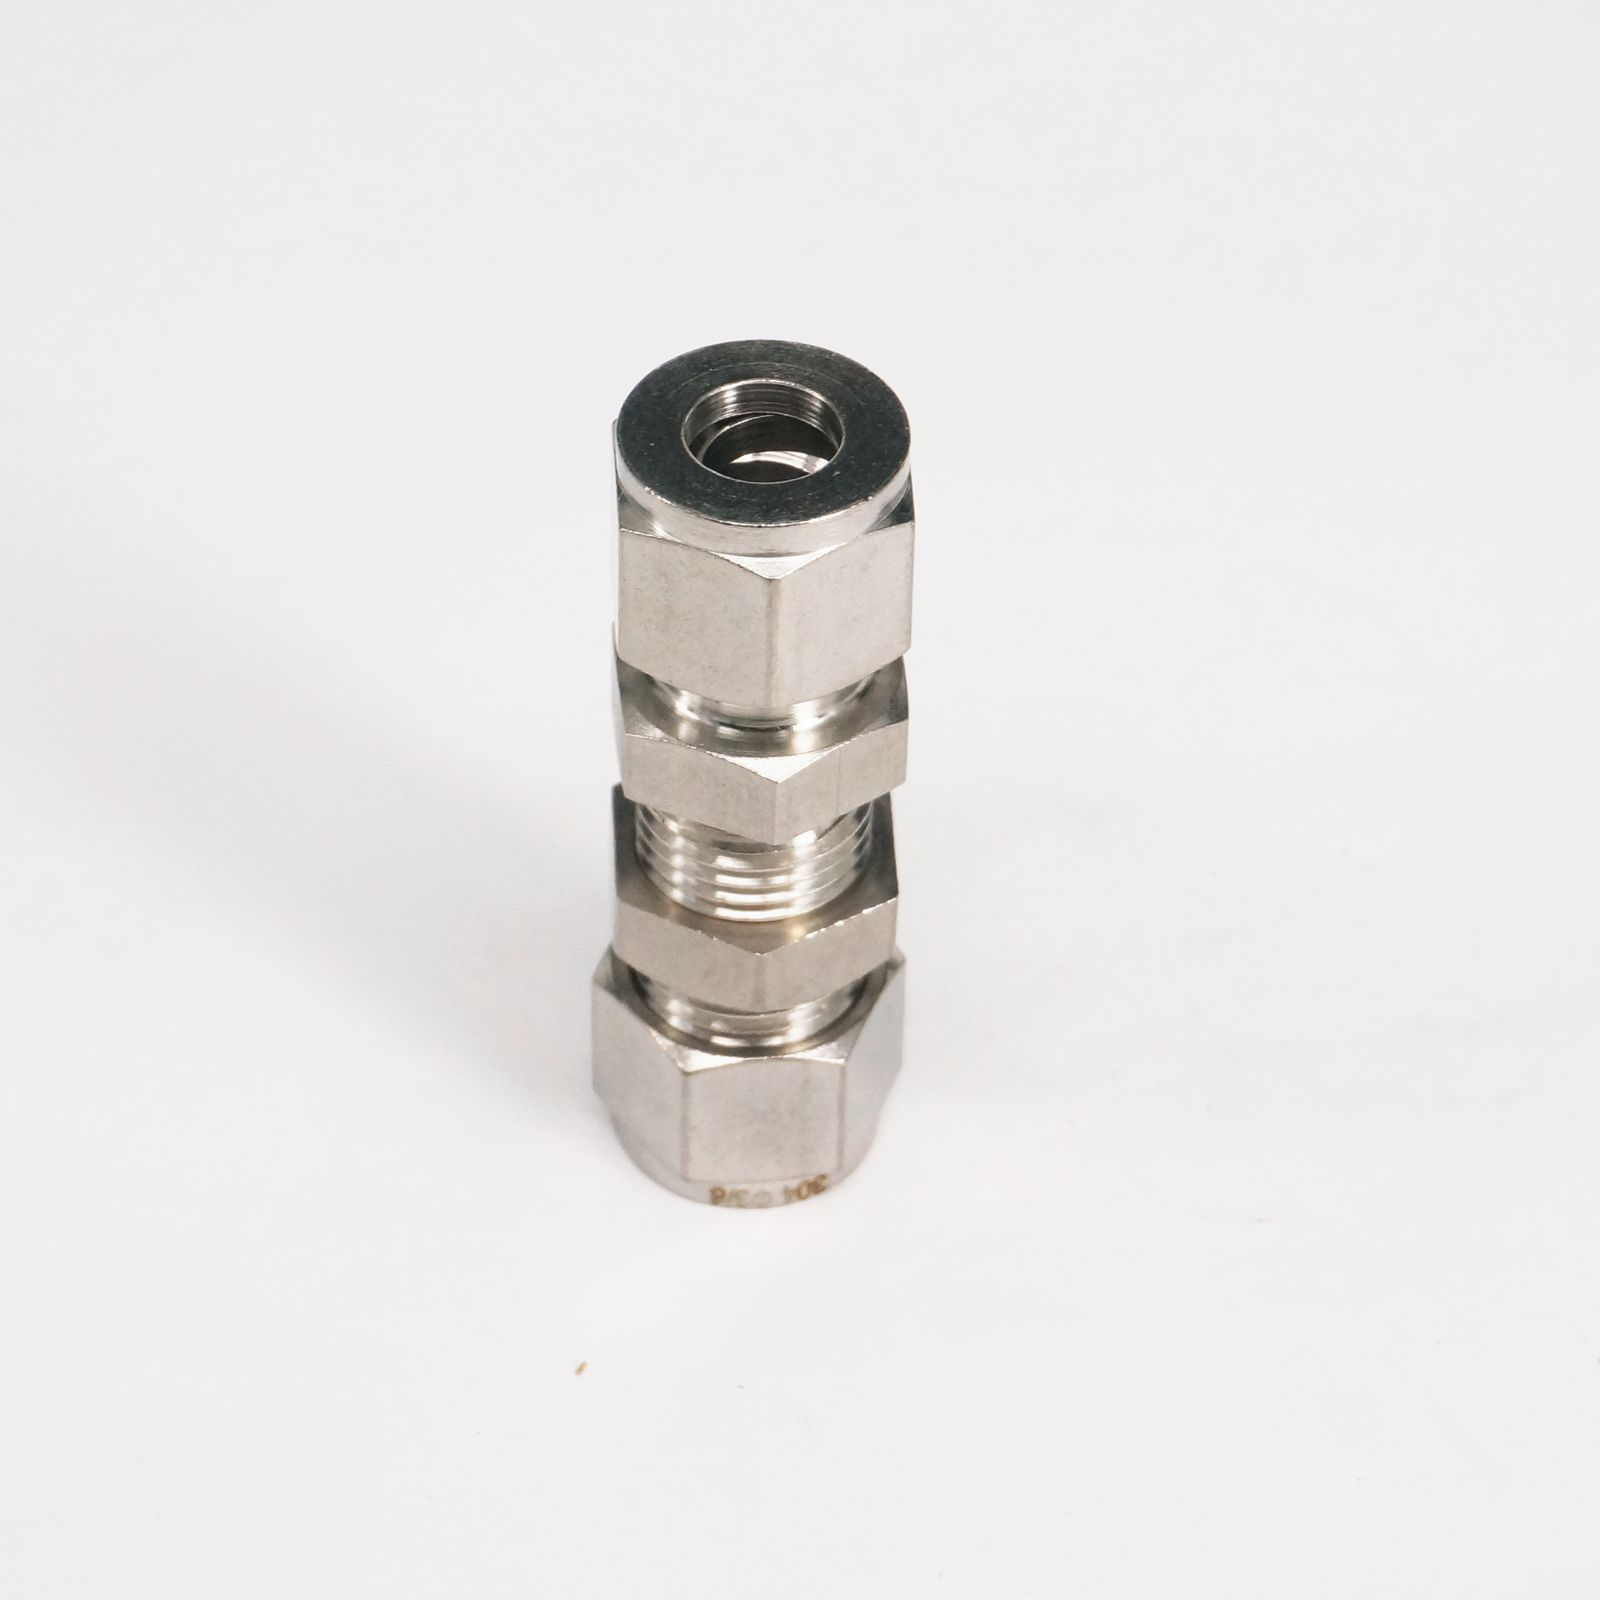 304 Stainless steel Fit 3 8 OD Tube Bulkhead Adapter Connector pression fitting For Tubing